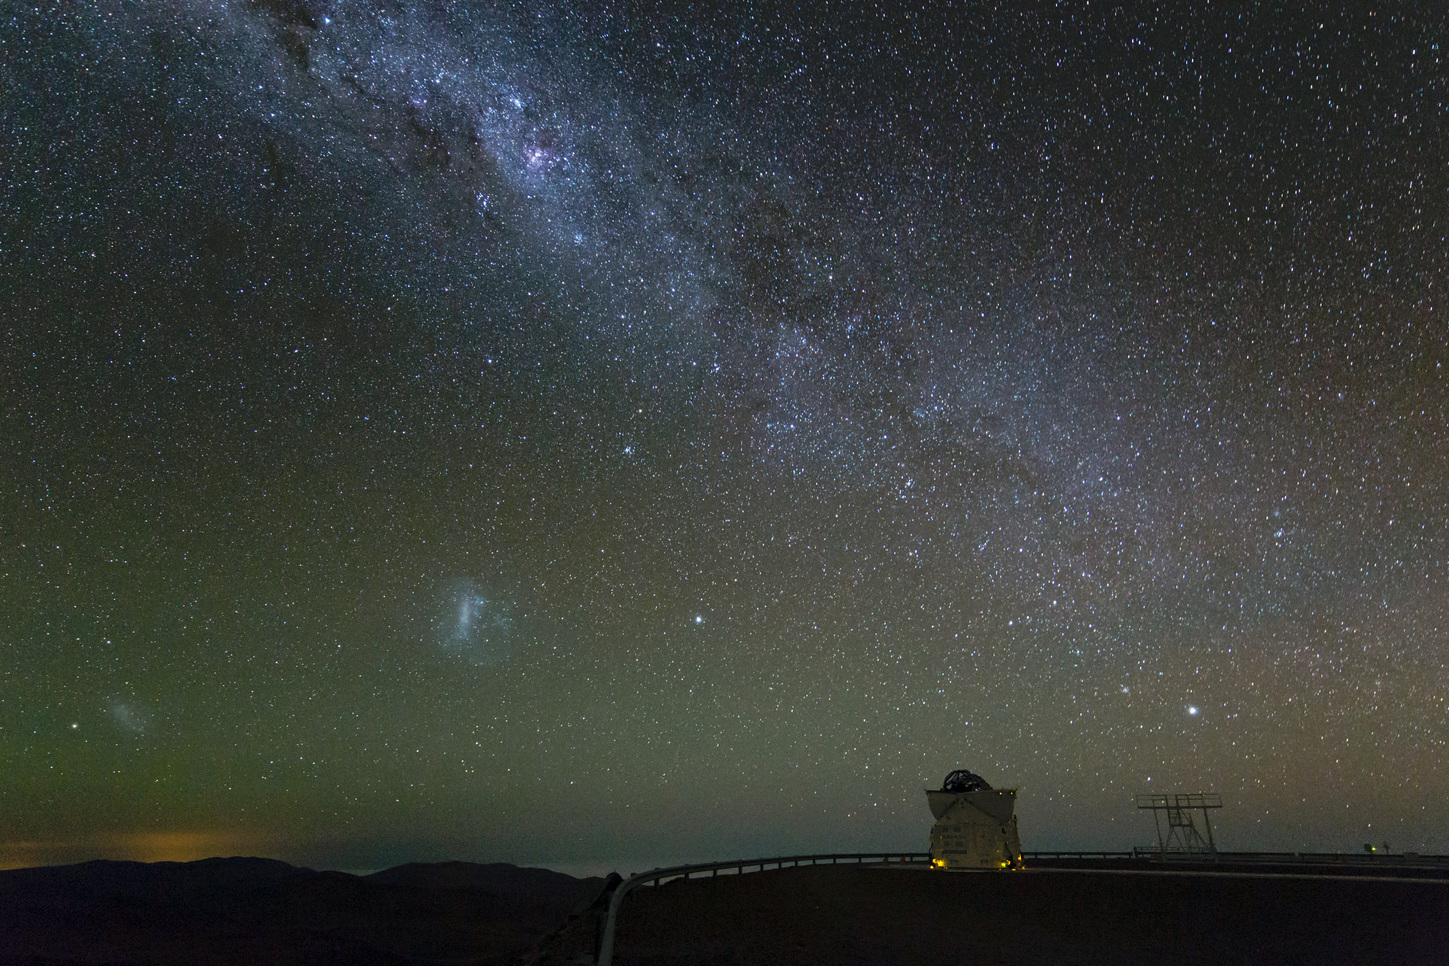 The Milky Way and its neighbouring dwarf galaxies, the Large and Small Magellanic Clouds seen in the lower left. - Image Credit: ESO/C. Malin